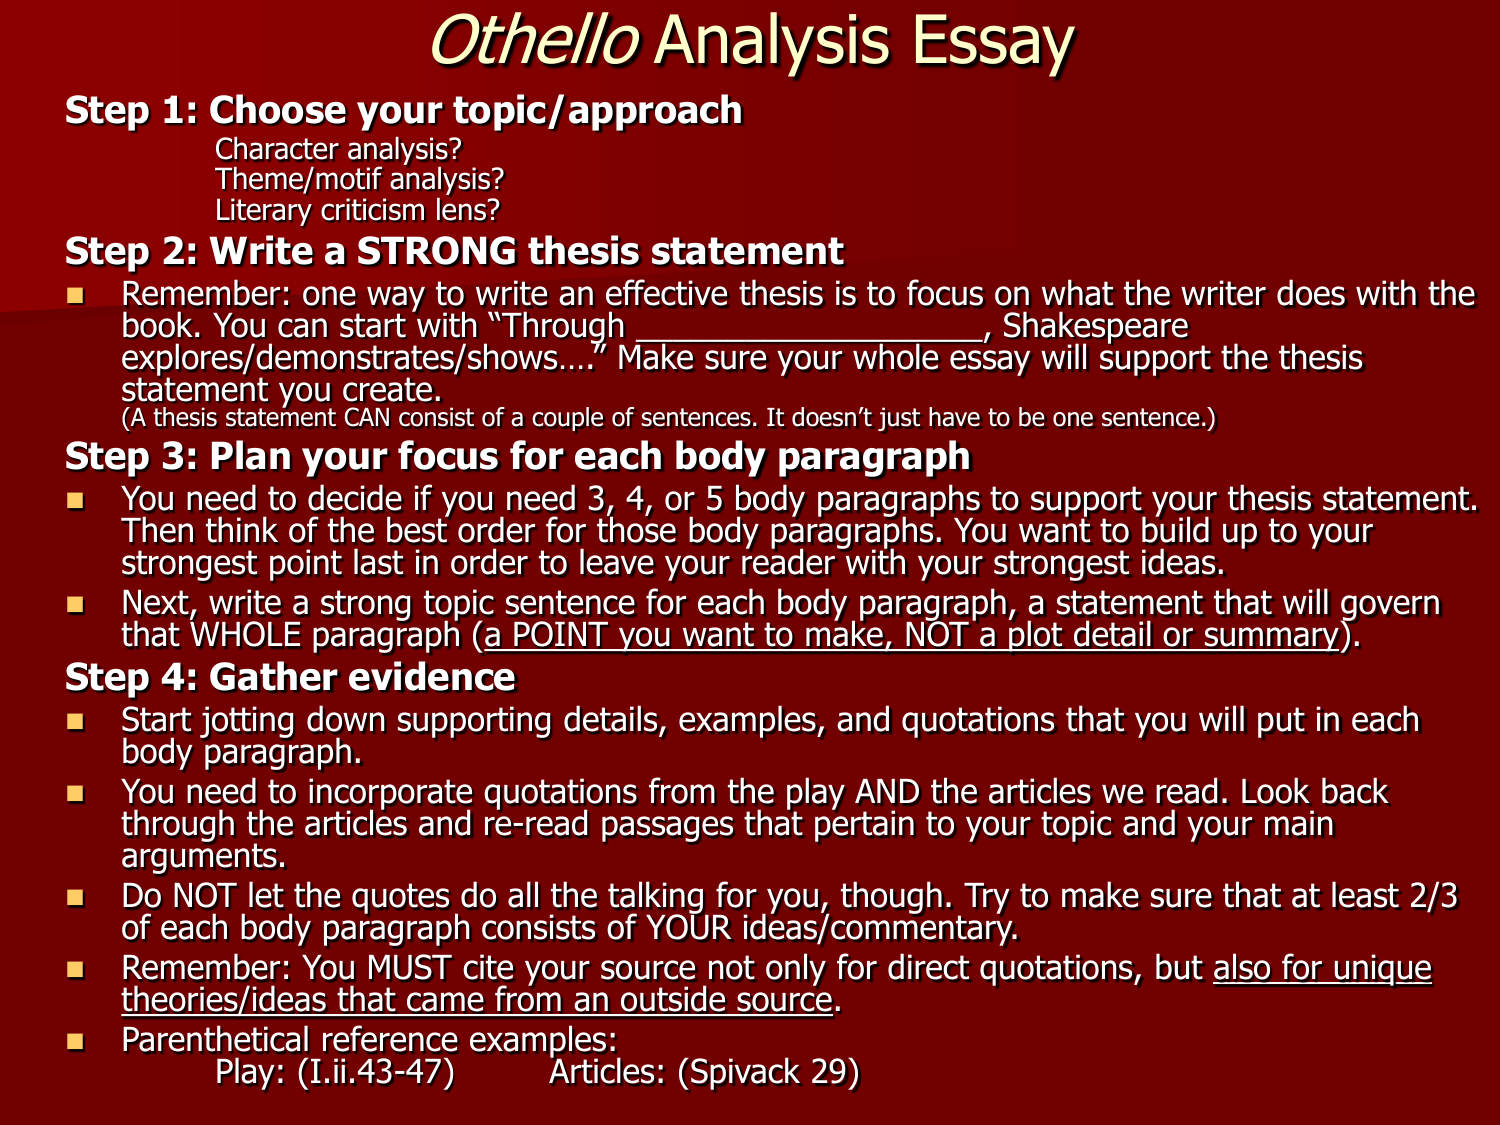 Science Fiction Essay  Proposal Essay Topic Ideas also Simple Essays For High School Students Othello Analysis Essay Planningwriting Steps Example Thesis Statements For Essays